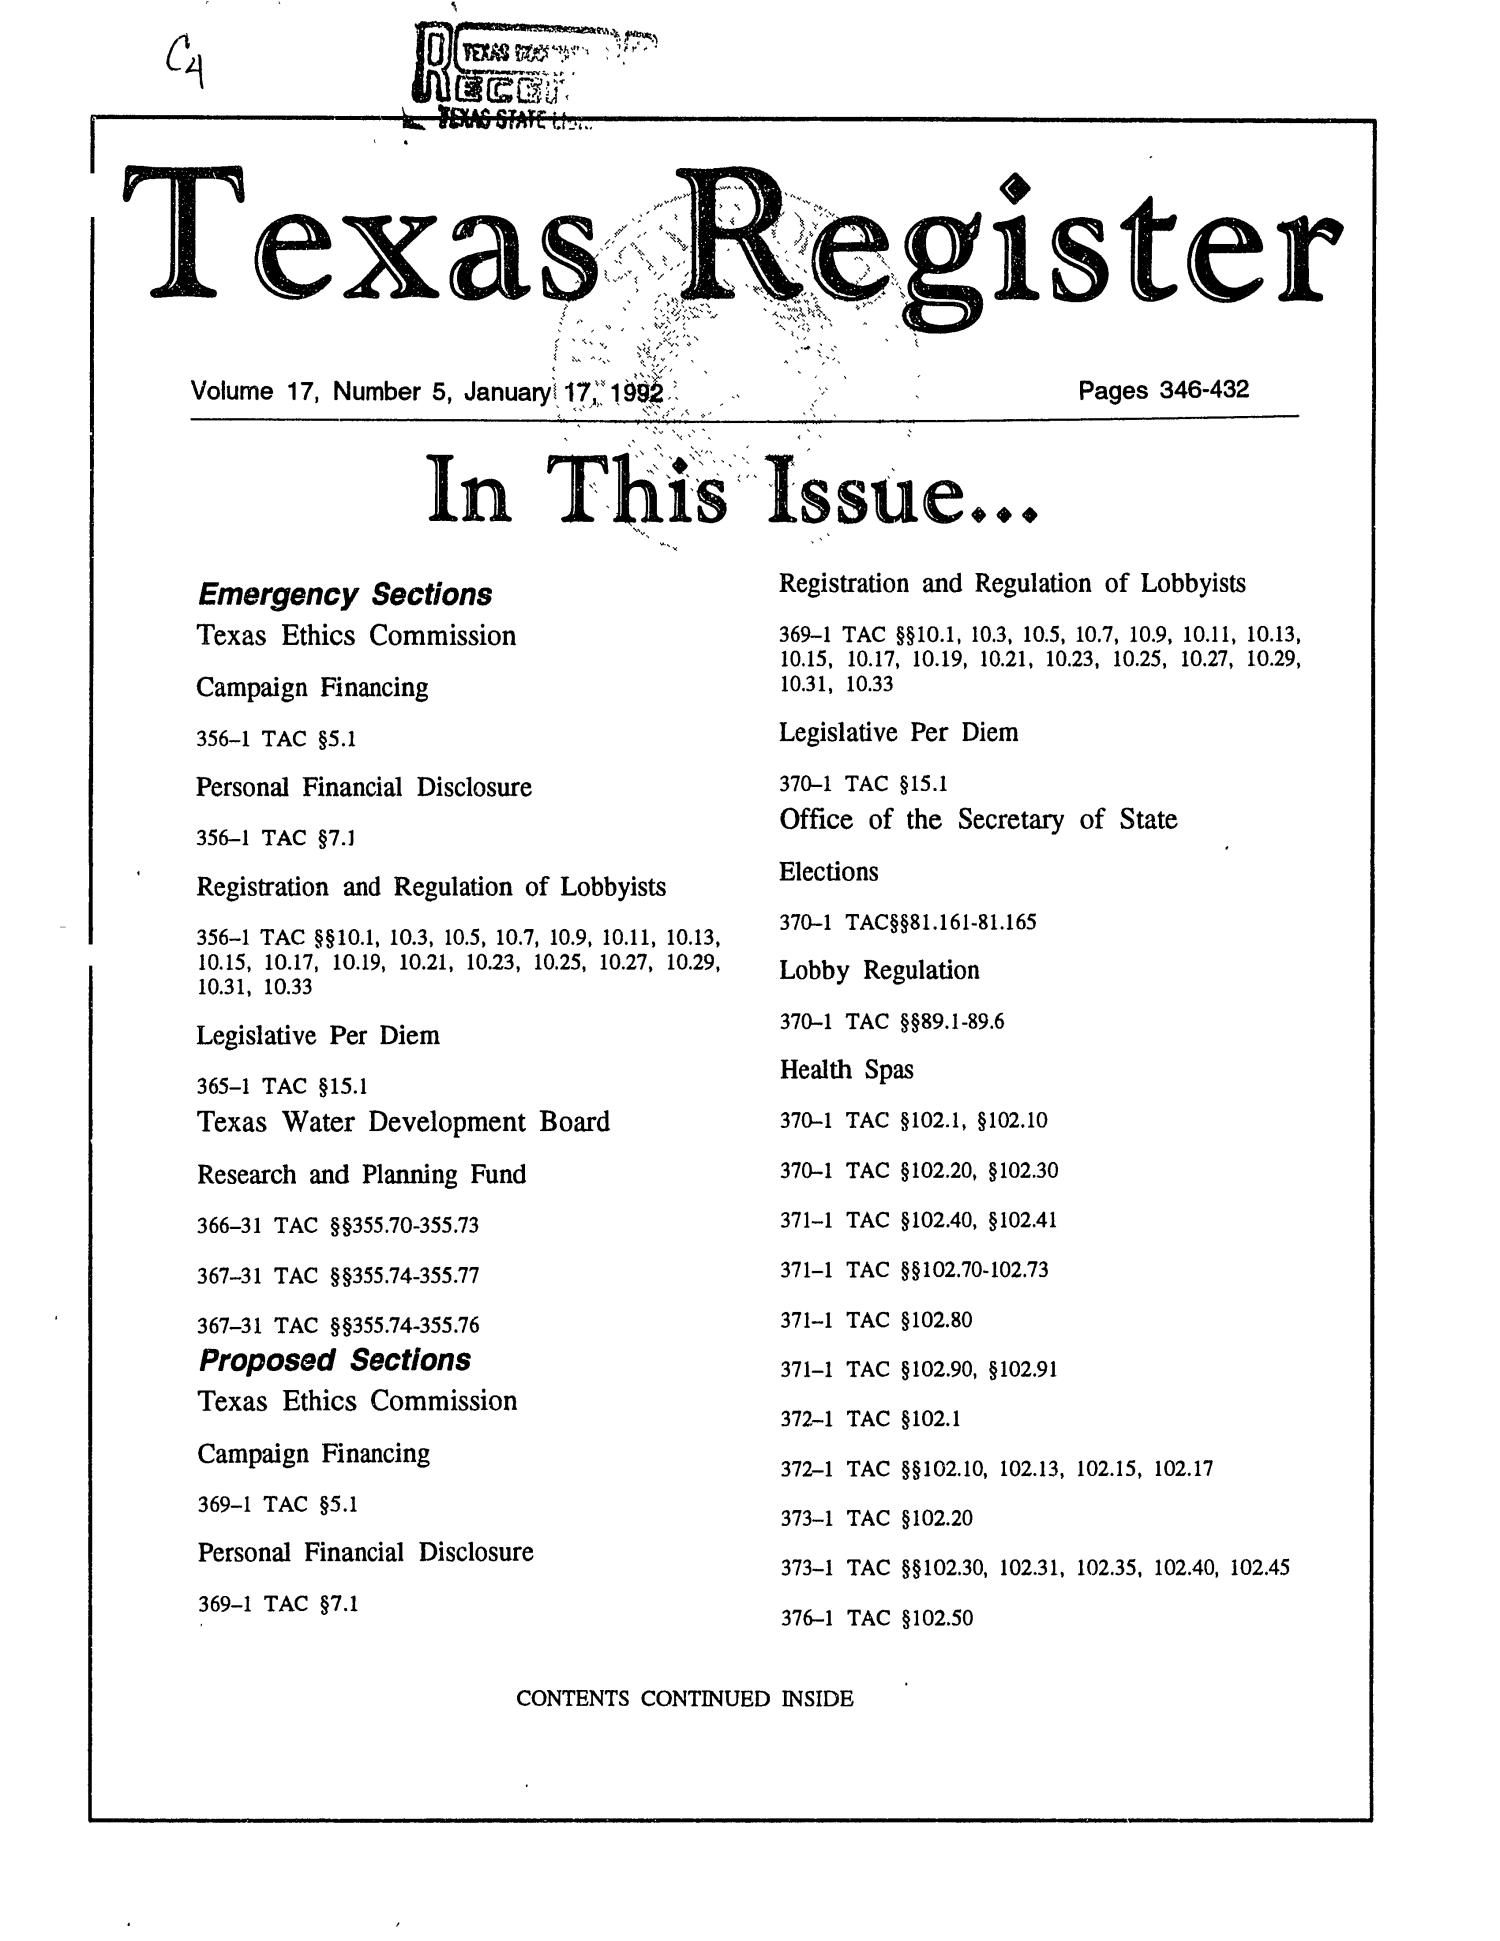 Texas Register, Volume 17, Number 5, Pages 346-432, January 17, 1992                                                                                                      Title Page